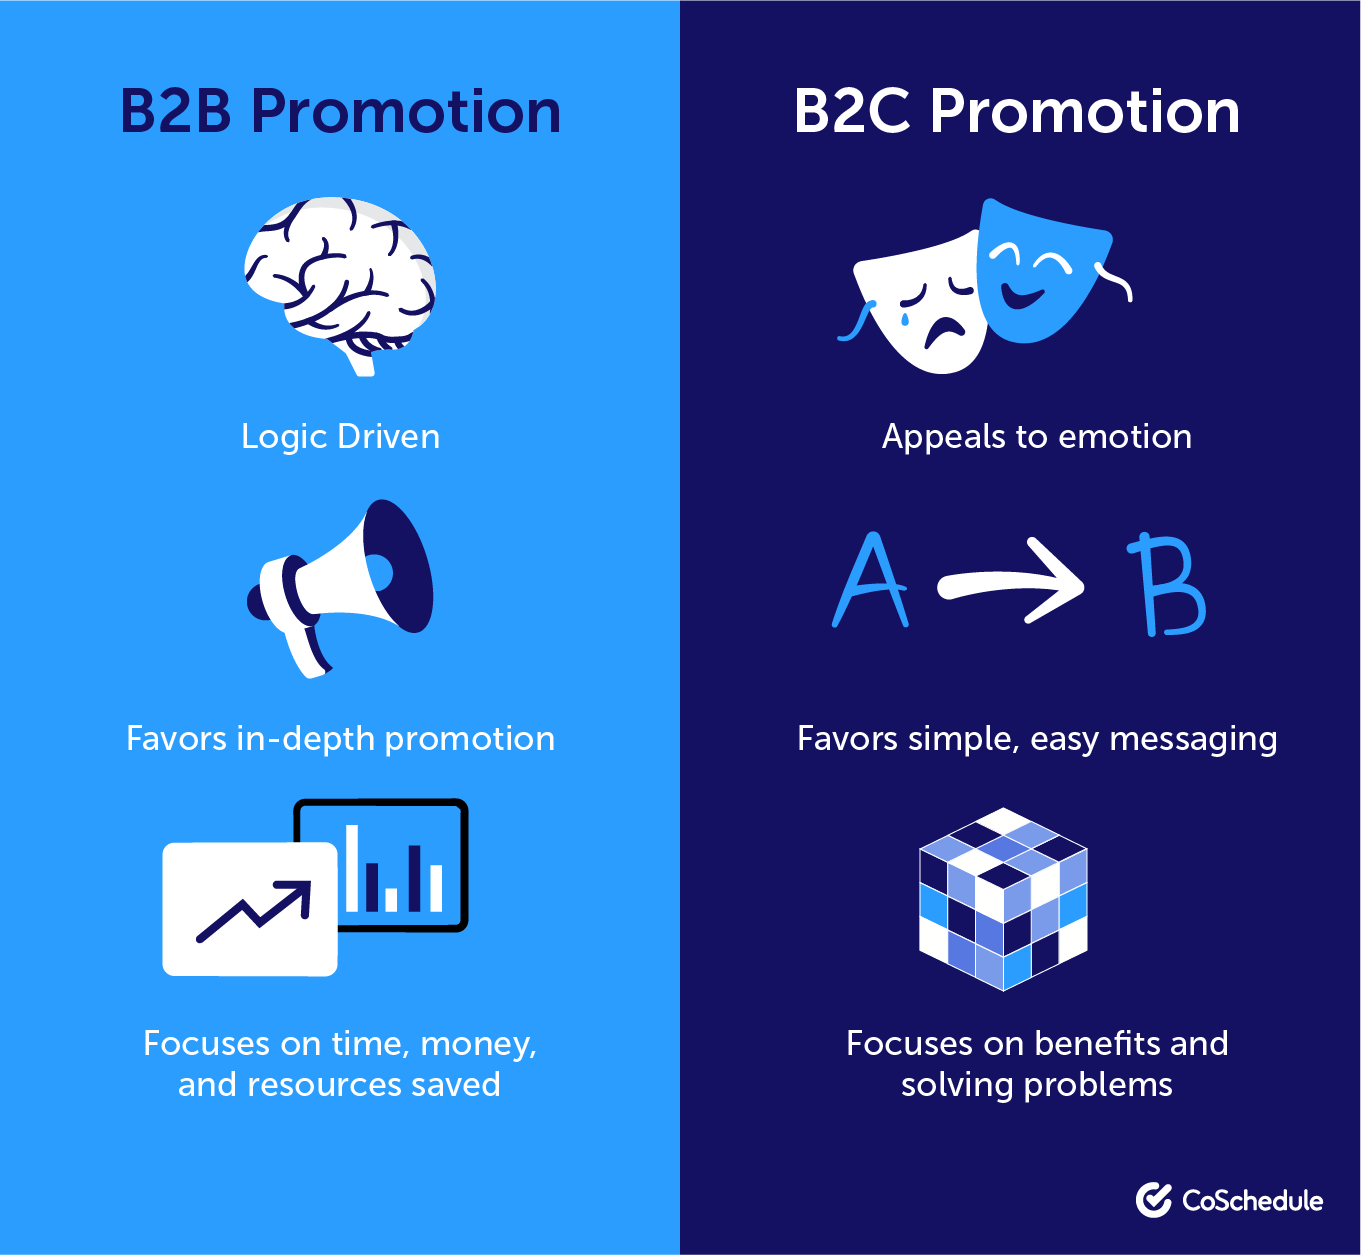 Best B2b Branded Campaigns Of Halloween 2020 B2B Marketing Campaign Examples and Templates to be More